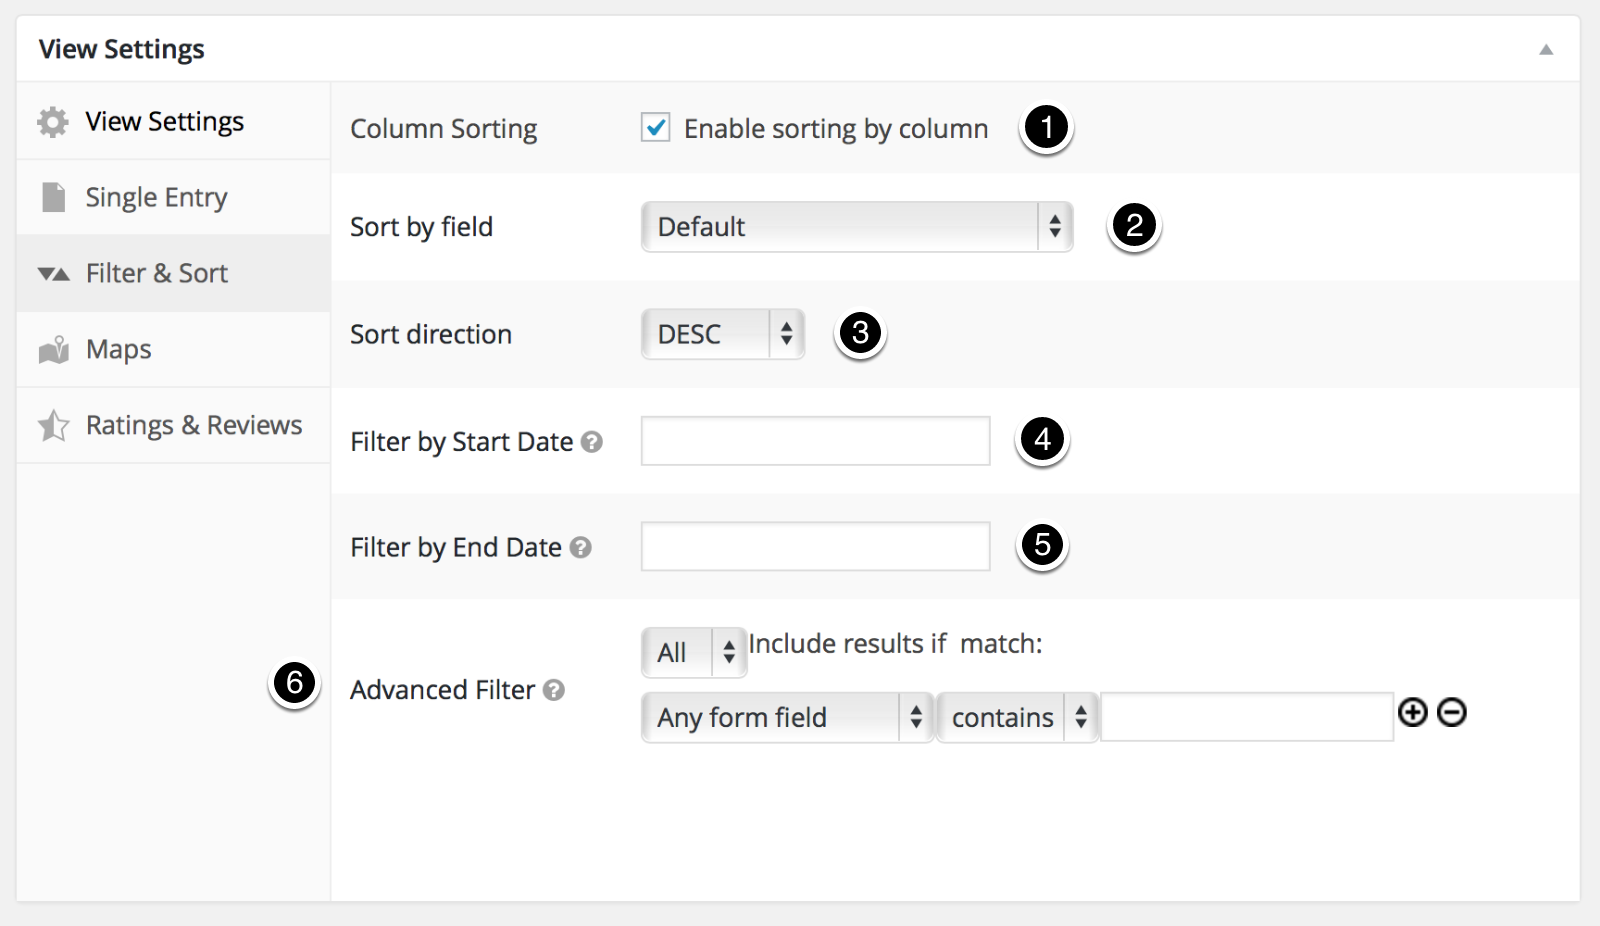 Filter & Sort Settings